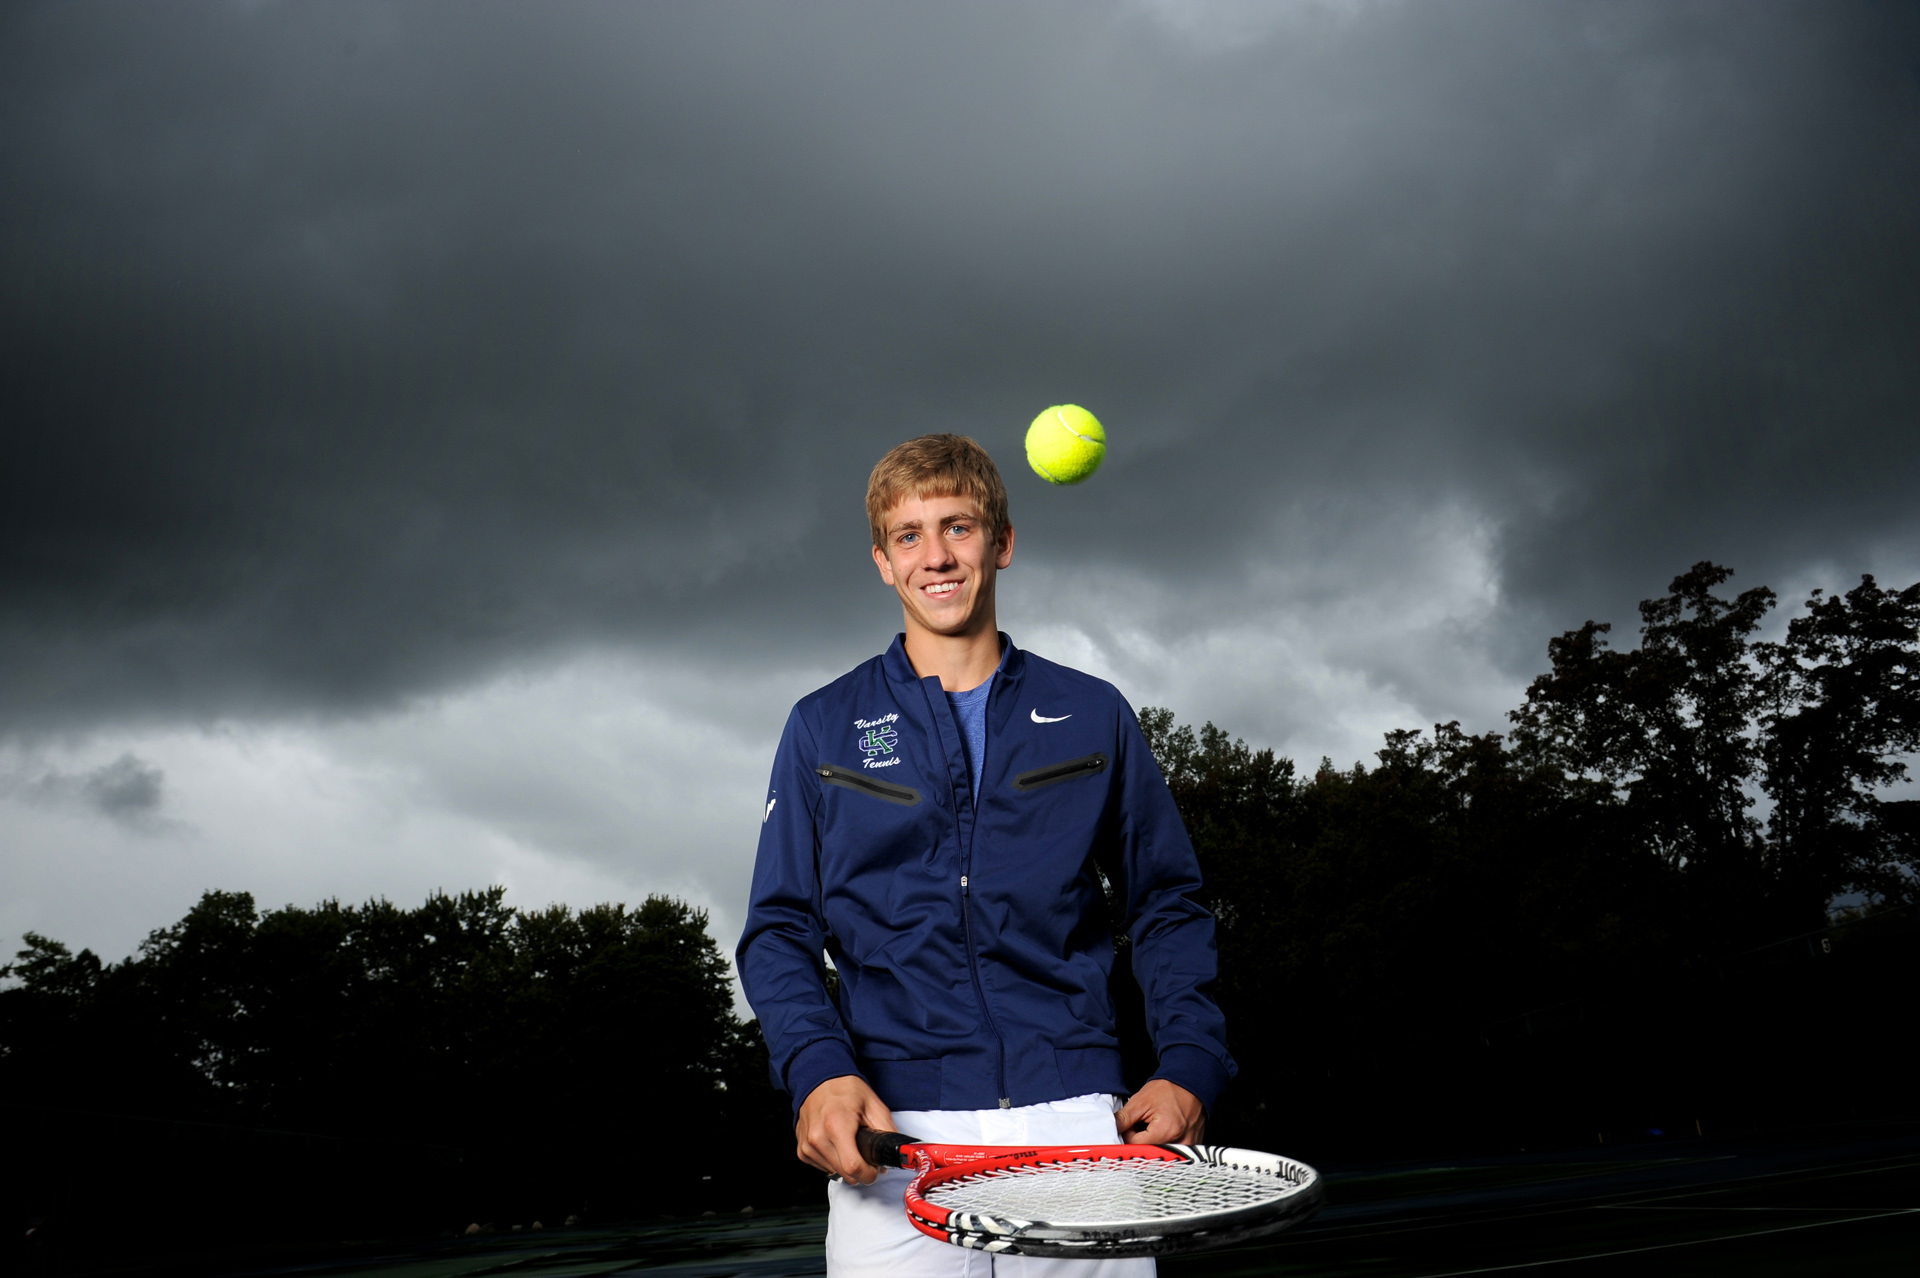 cranbrook, Michigan senior photographer's photo taken of a tennis player in a storm at Cranbrook School in Bloomfield, Michigan.